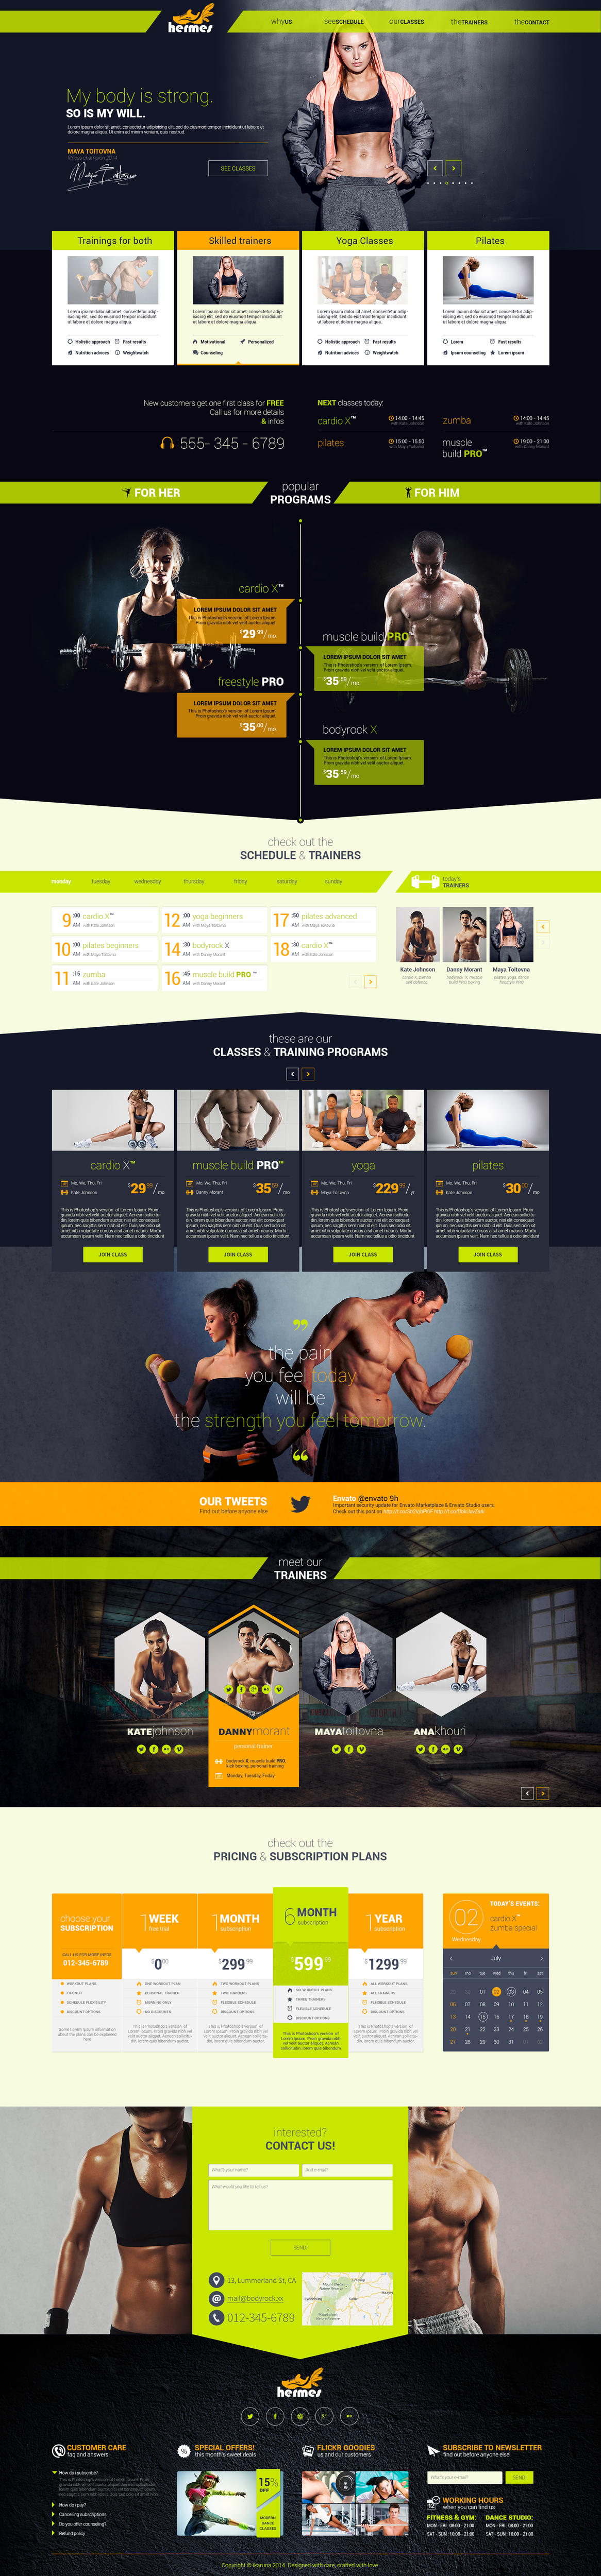 High-Quality and Creative Onepage Design by ikaruna_design - 55666